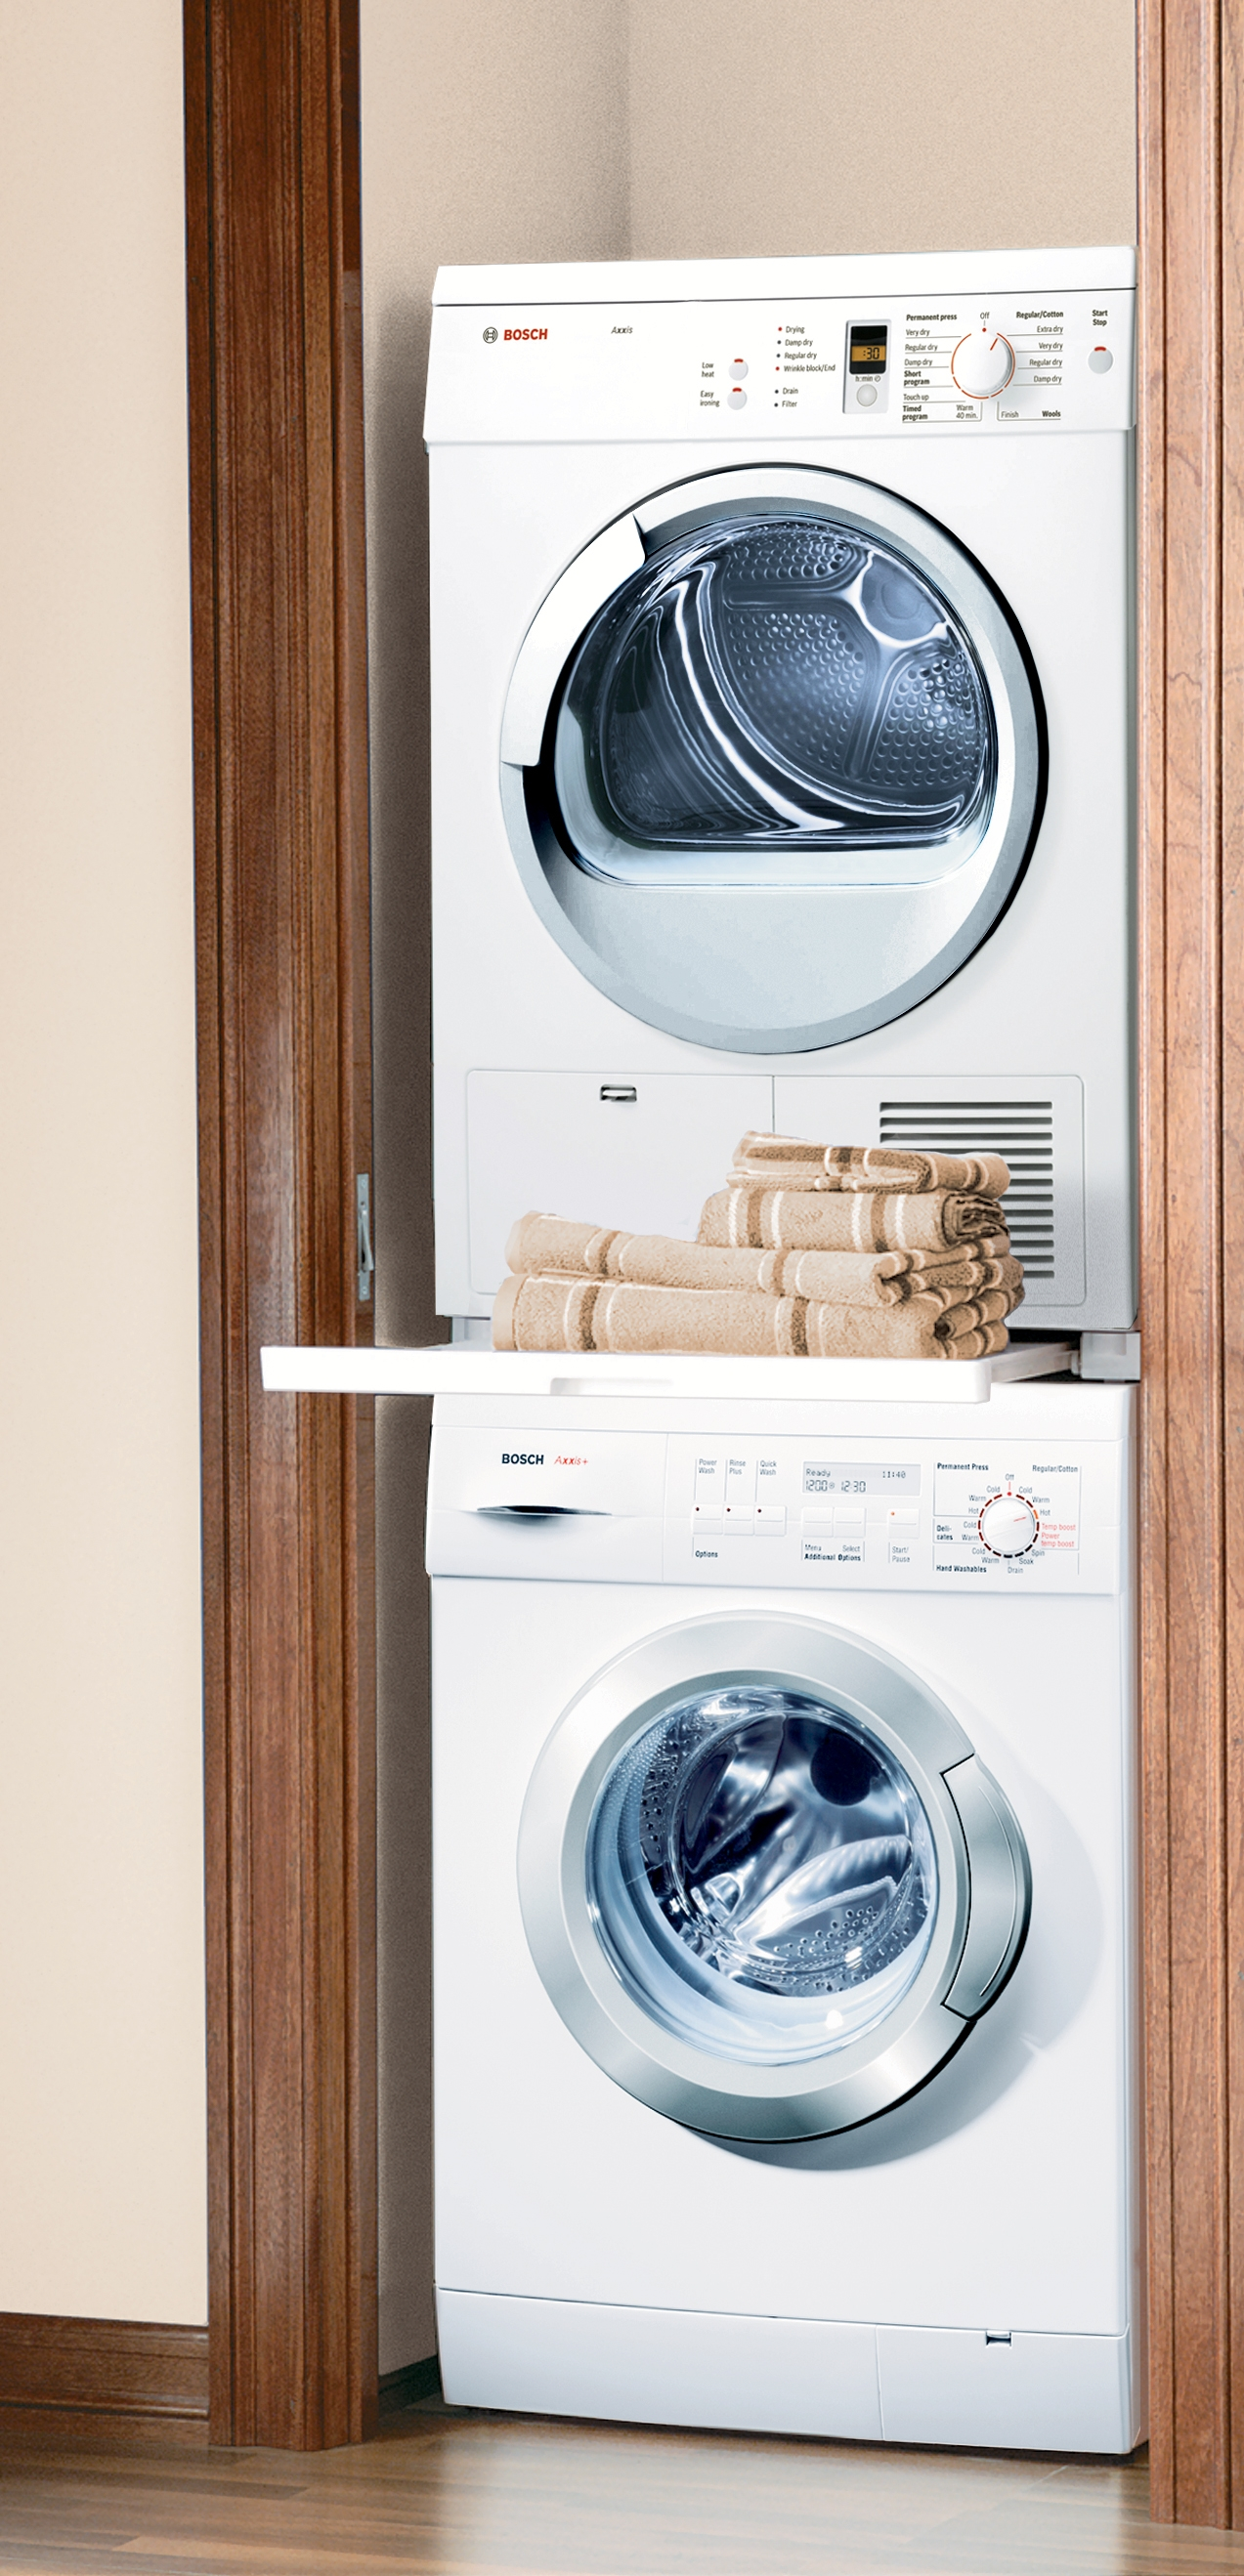 Bosch stacked washer dryer combo (2016_09_18 03_19_26 UTC)